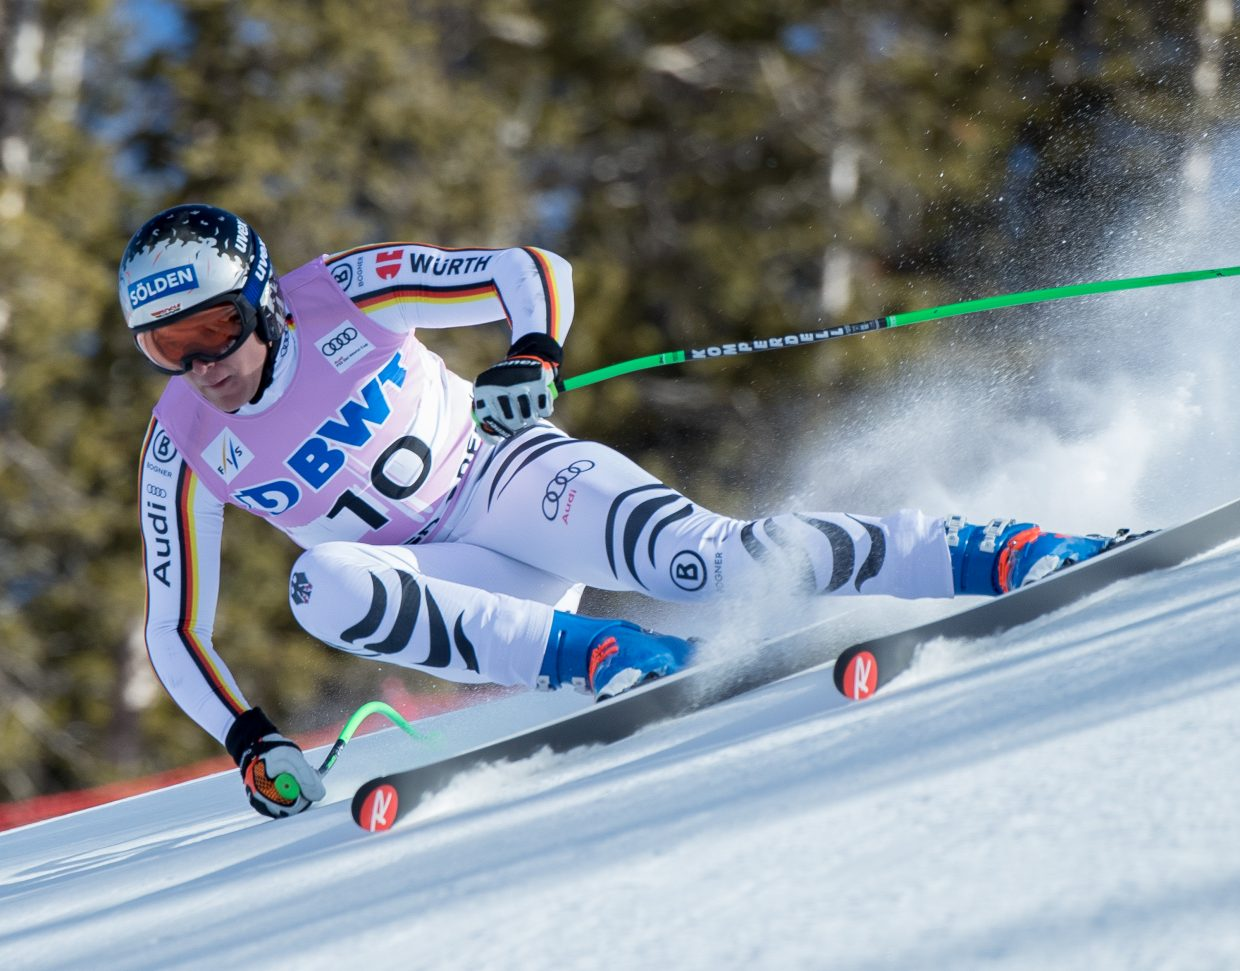 Germany's Thomas Dressen holds his line at the top of  the Brink during the Birds of Prey Downhill race Saturday at Beaver Creek.  Dressen took  thrid place behind Aksel Svindal and Beat Feuz.